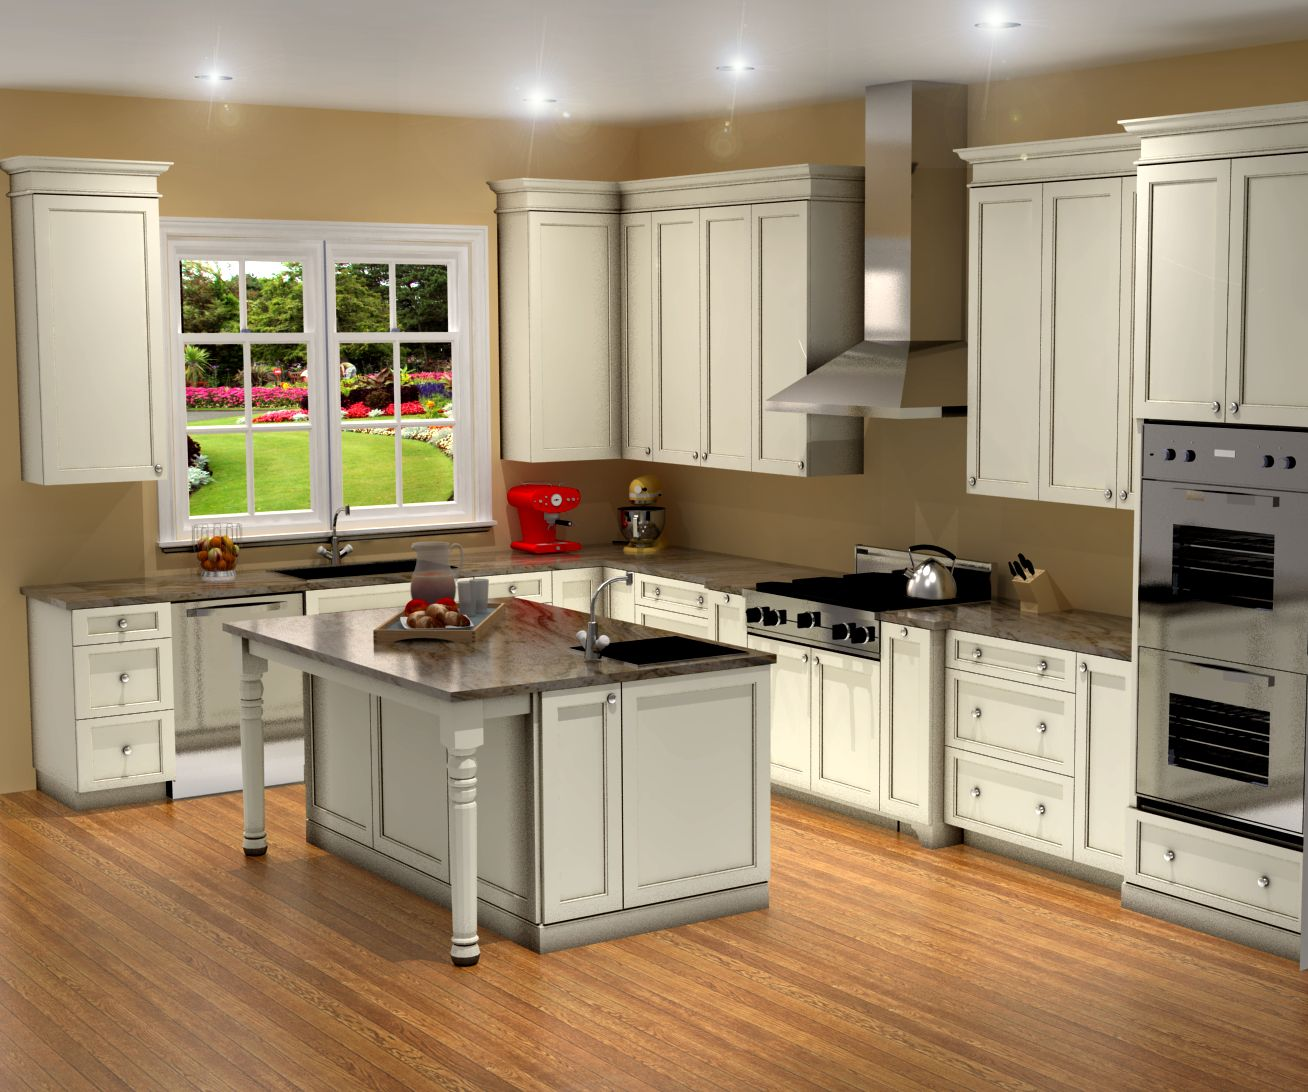 Traditional white kitchen design 3d rendering nick for Traditional kitchen design